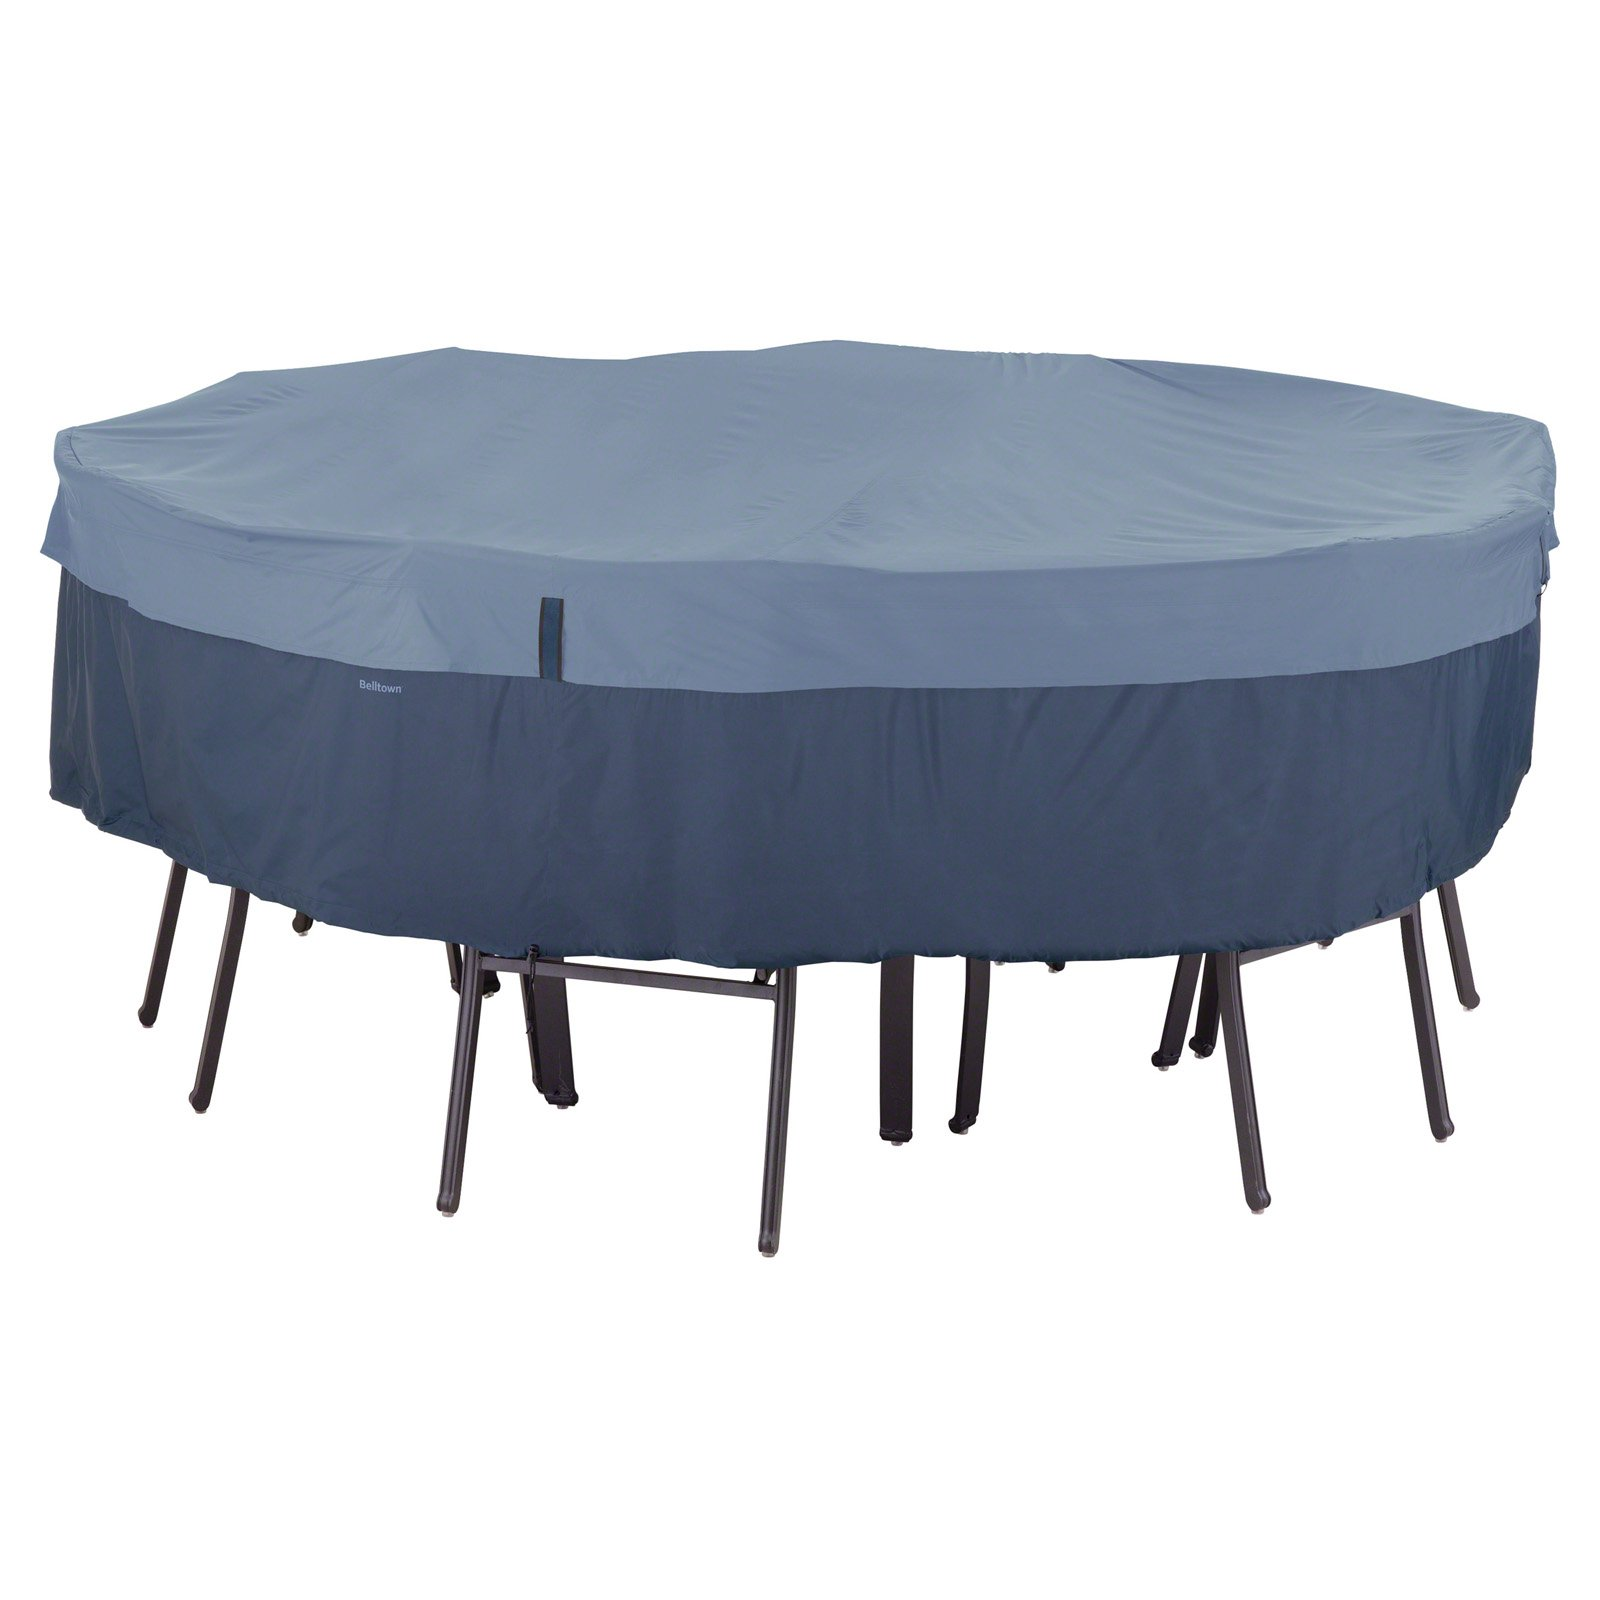 Classic Accessories Belltown Round Table And Chair Patio Furniture Storage  Cover, Large, Skyline Blue